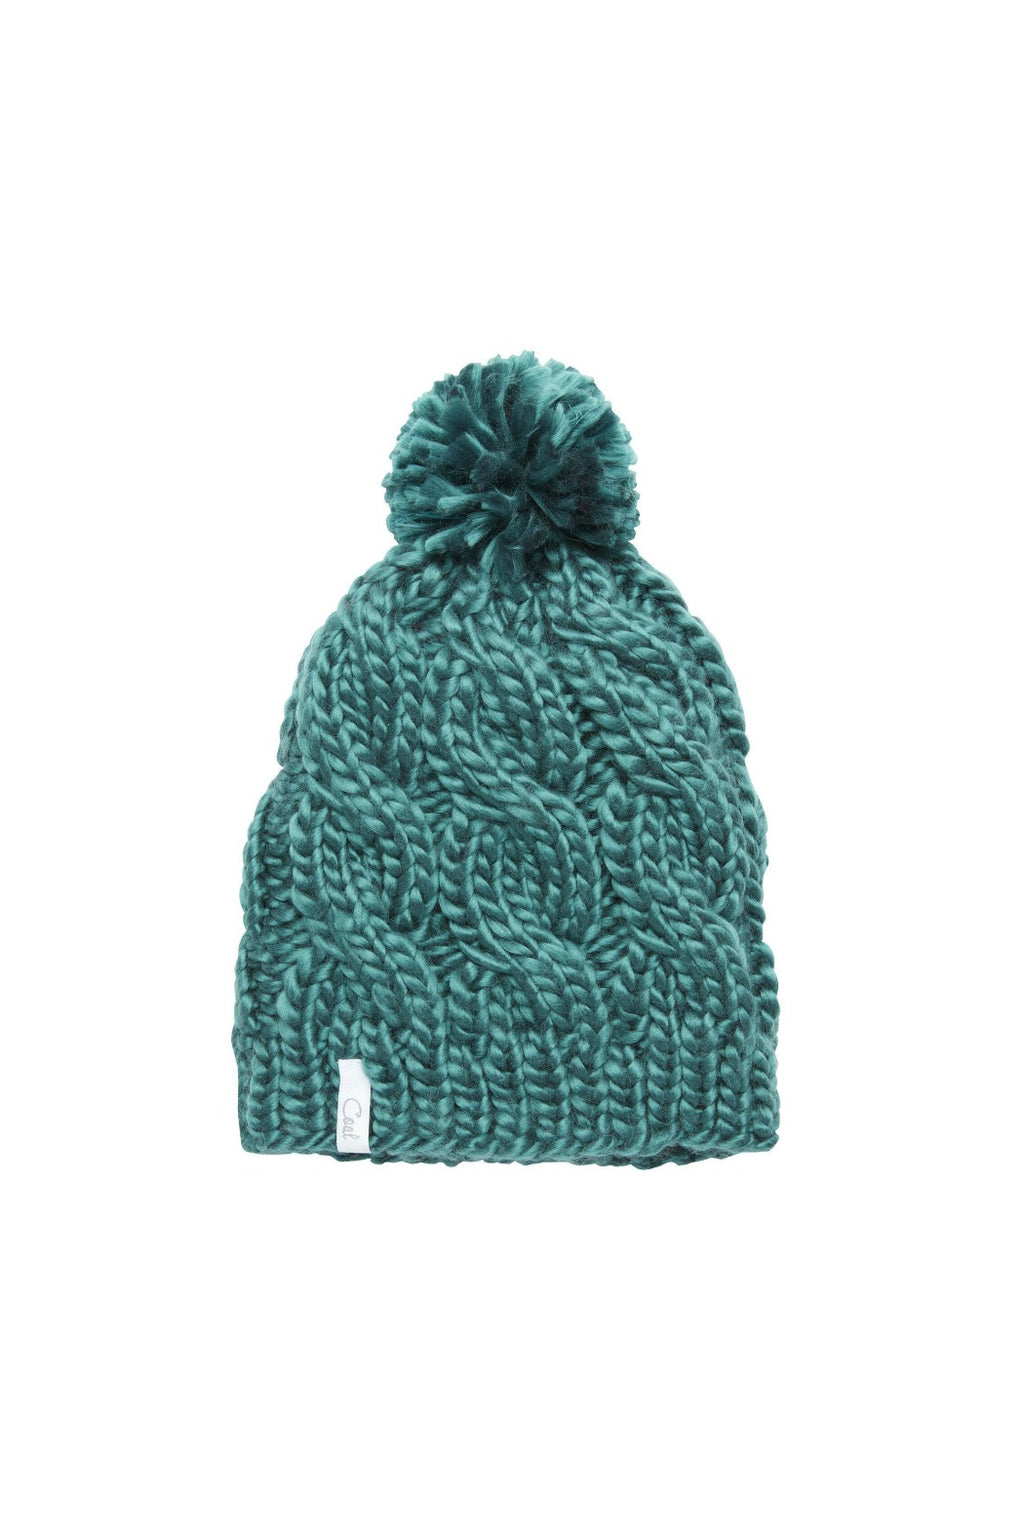 Coal Rosa Knit Pom Beanie - Evergreen